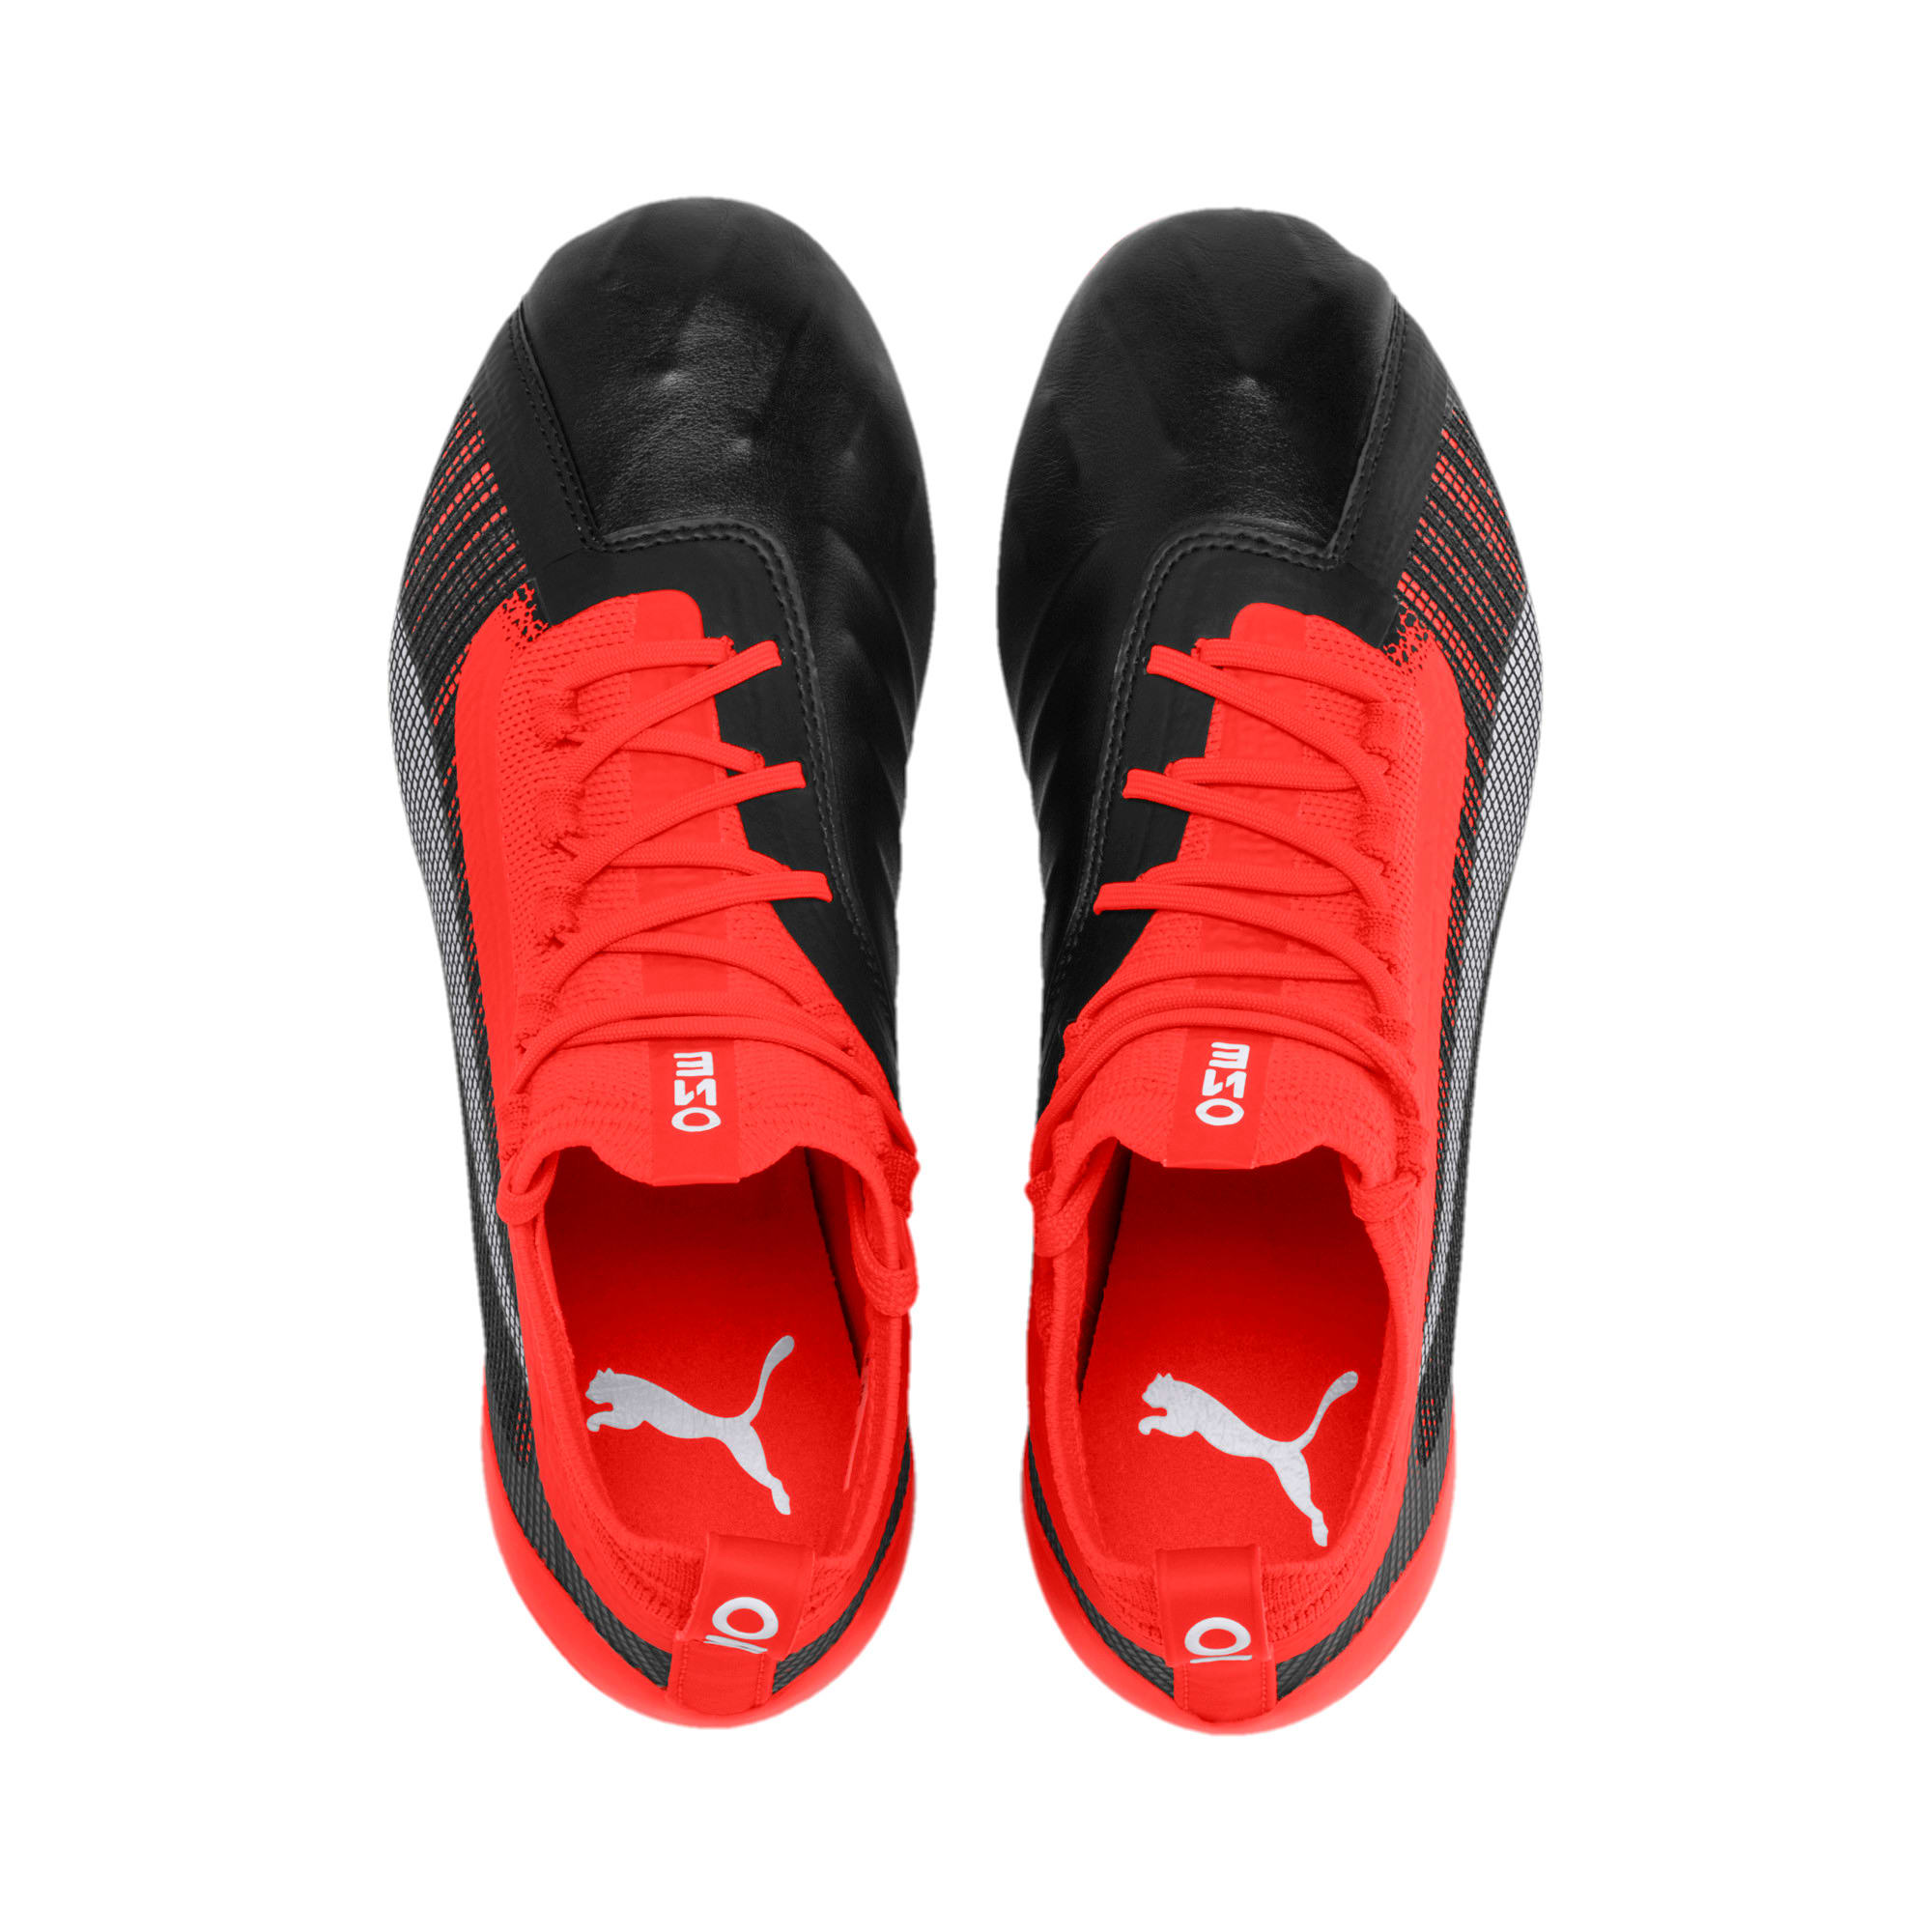 Thumbnail 6 of PUMA ONE 5.1 voetbalschoenen voor jeugd, Black-Nrgy Red-Aged Silver, medium